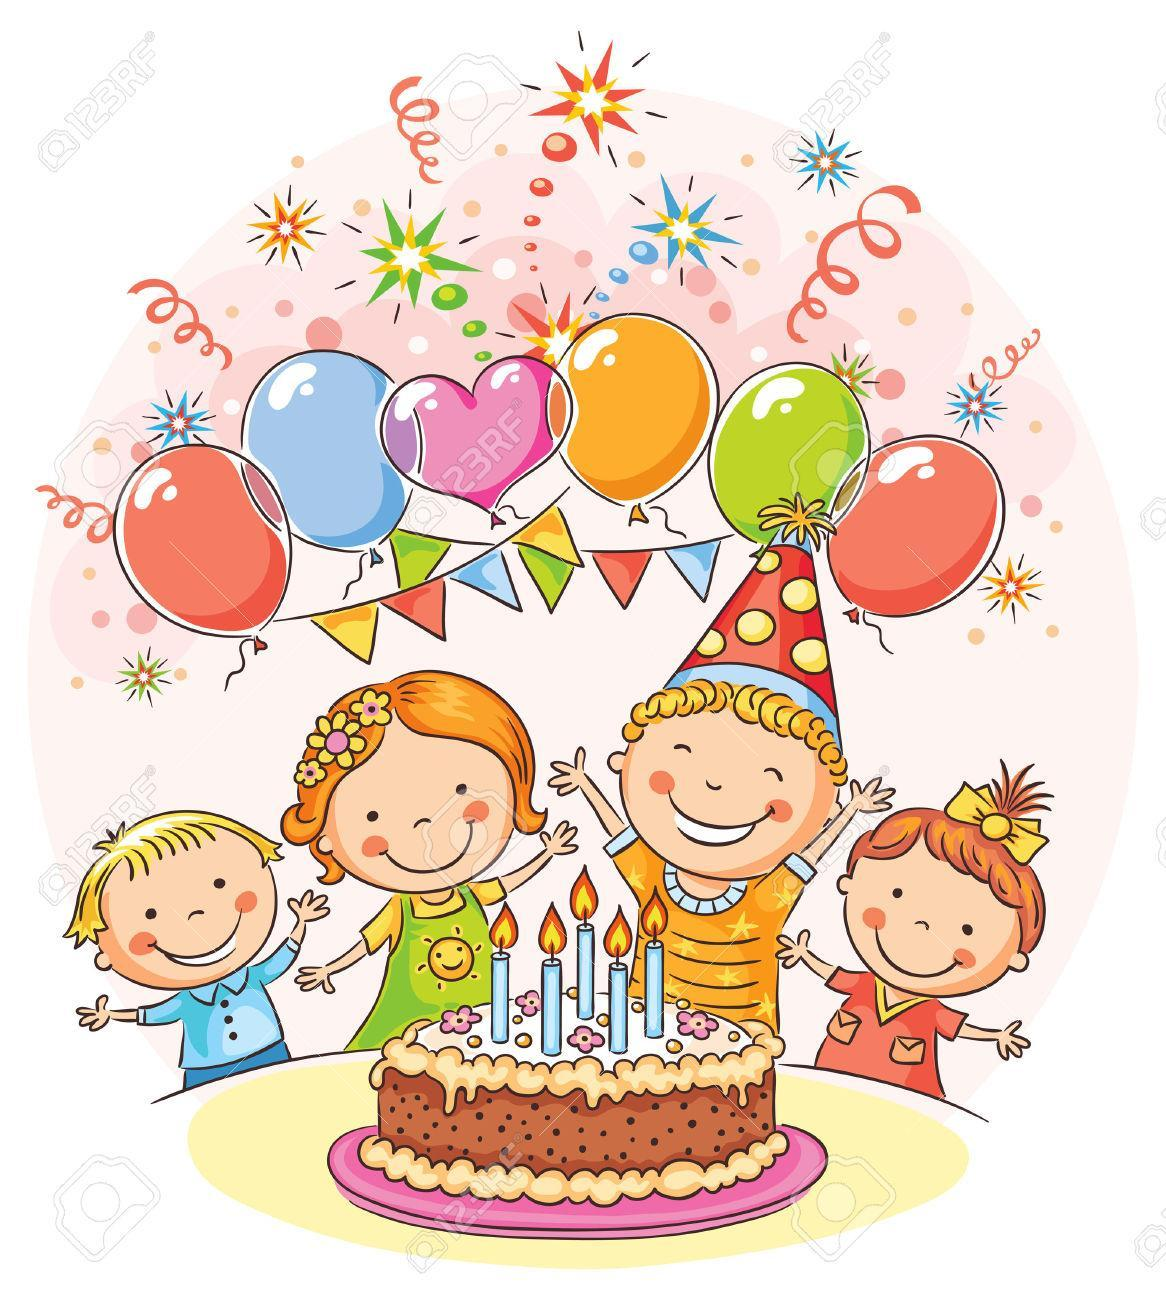 birthday party clip art pictures ; birthday-party-clipart-119957-9248578